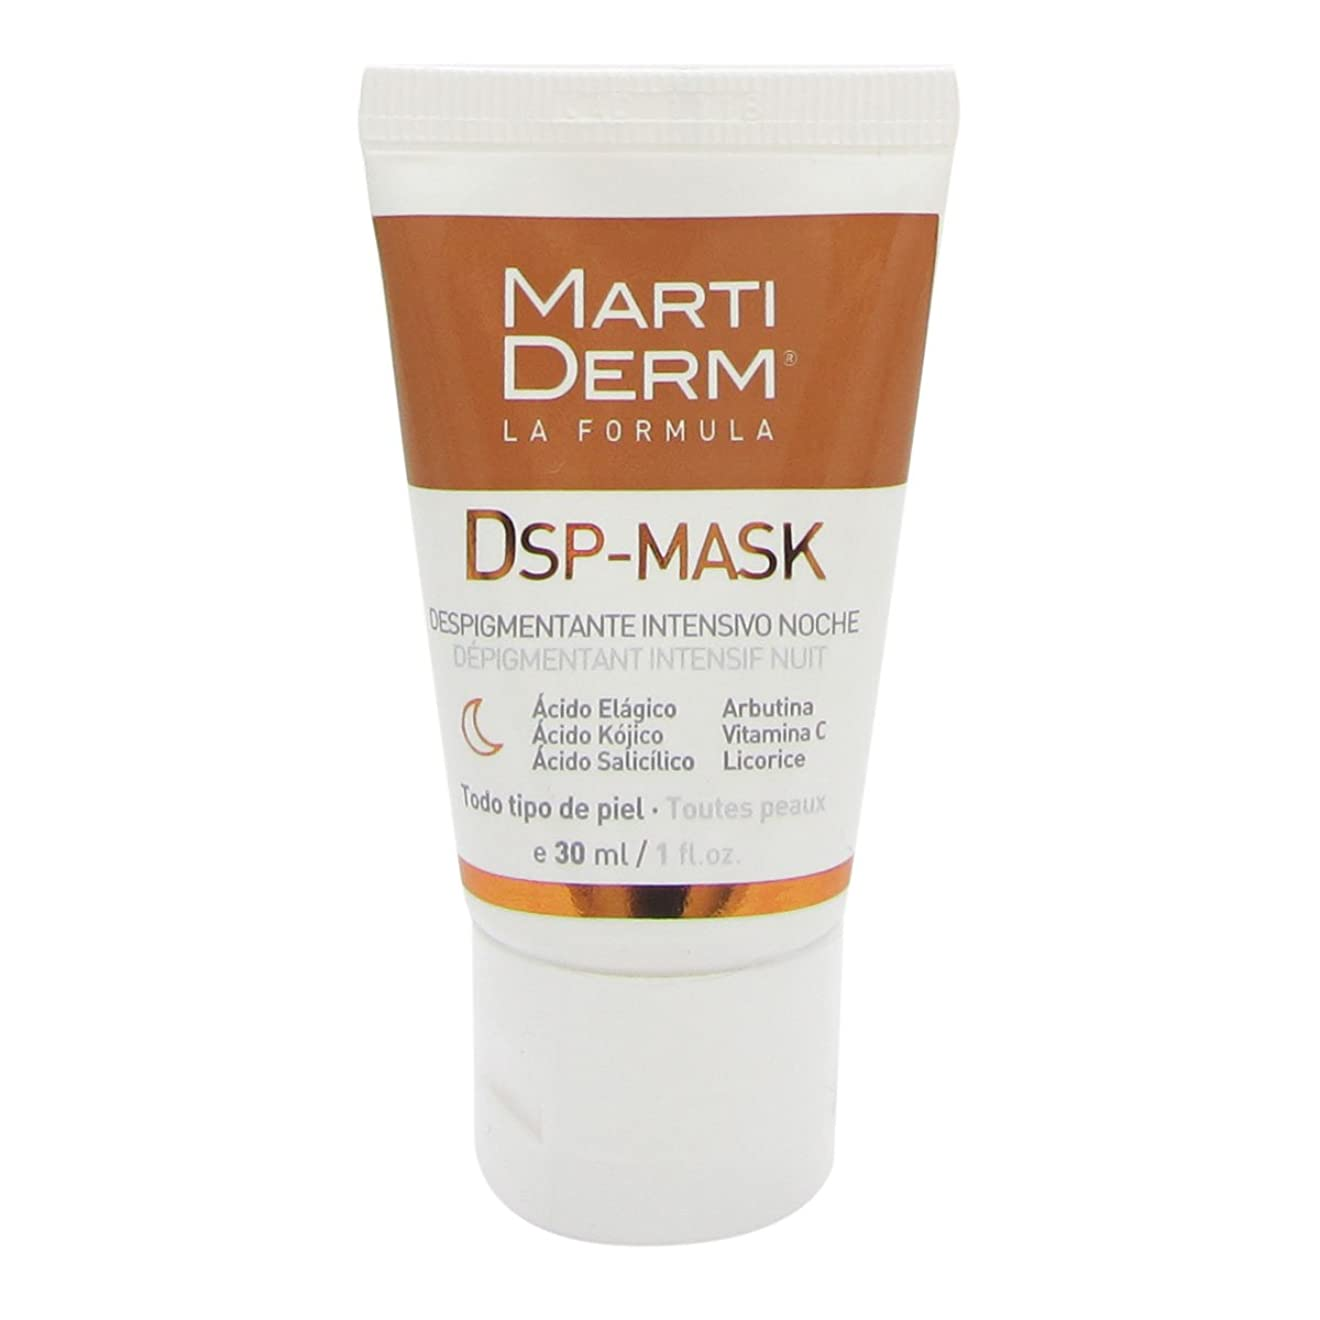 直接インレイ一時停止Martiderm Dsp-mask Intensive Depigmenting Night 30ml [並行輸入品]